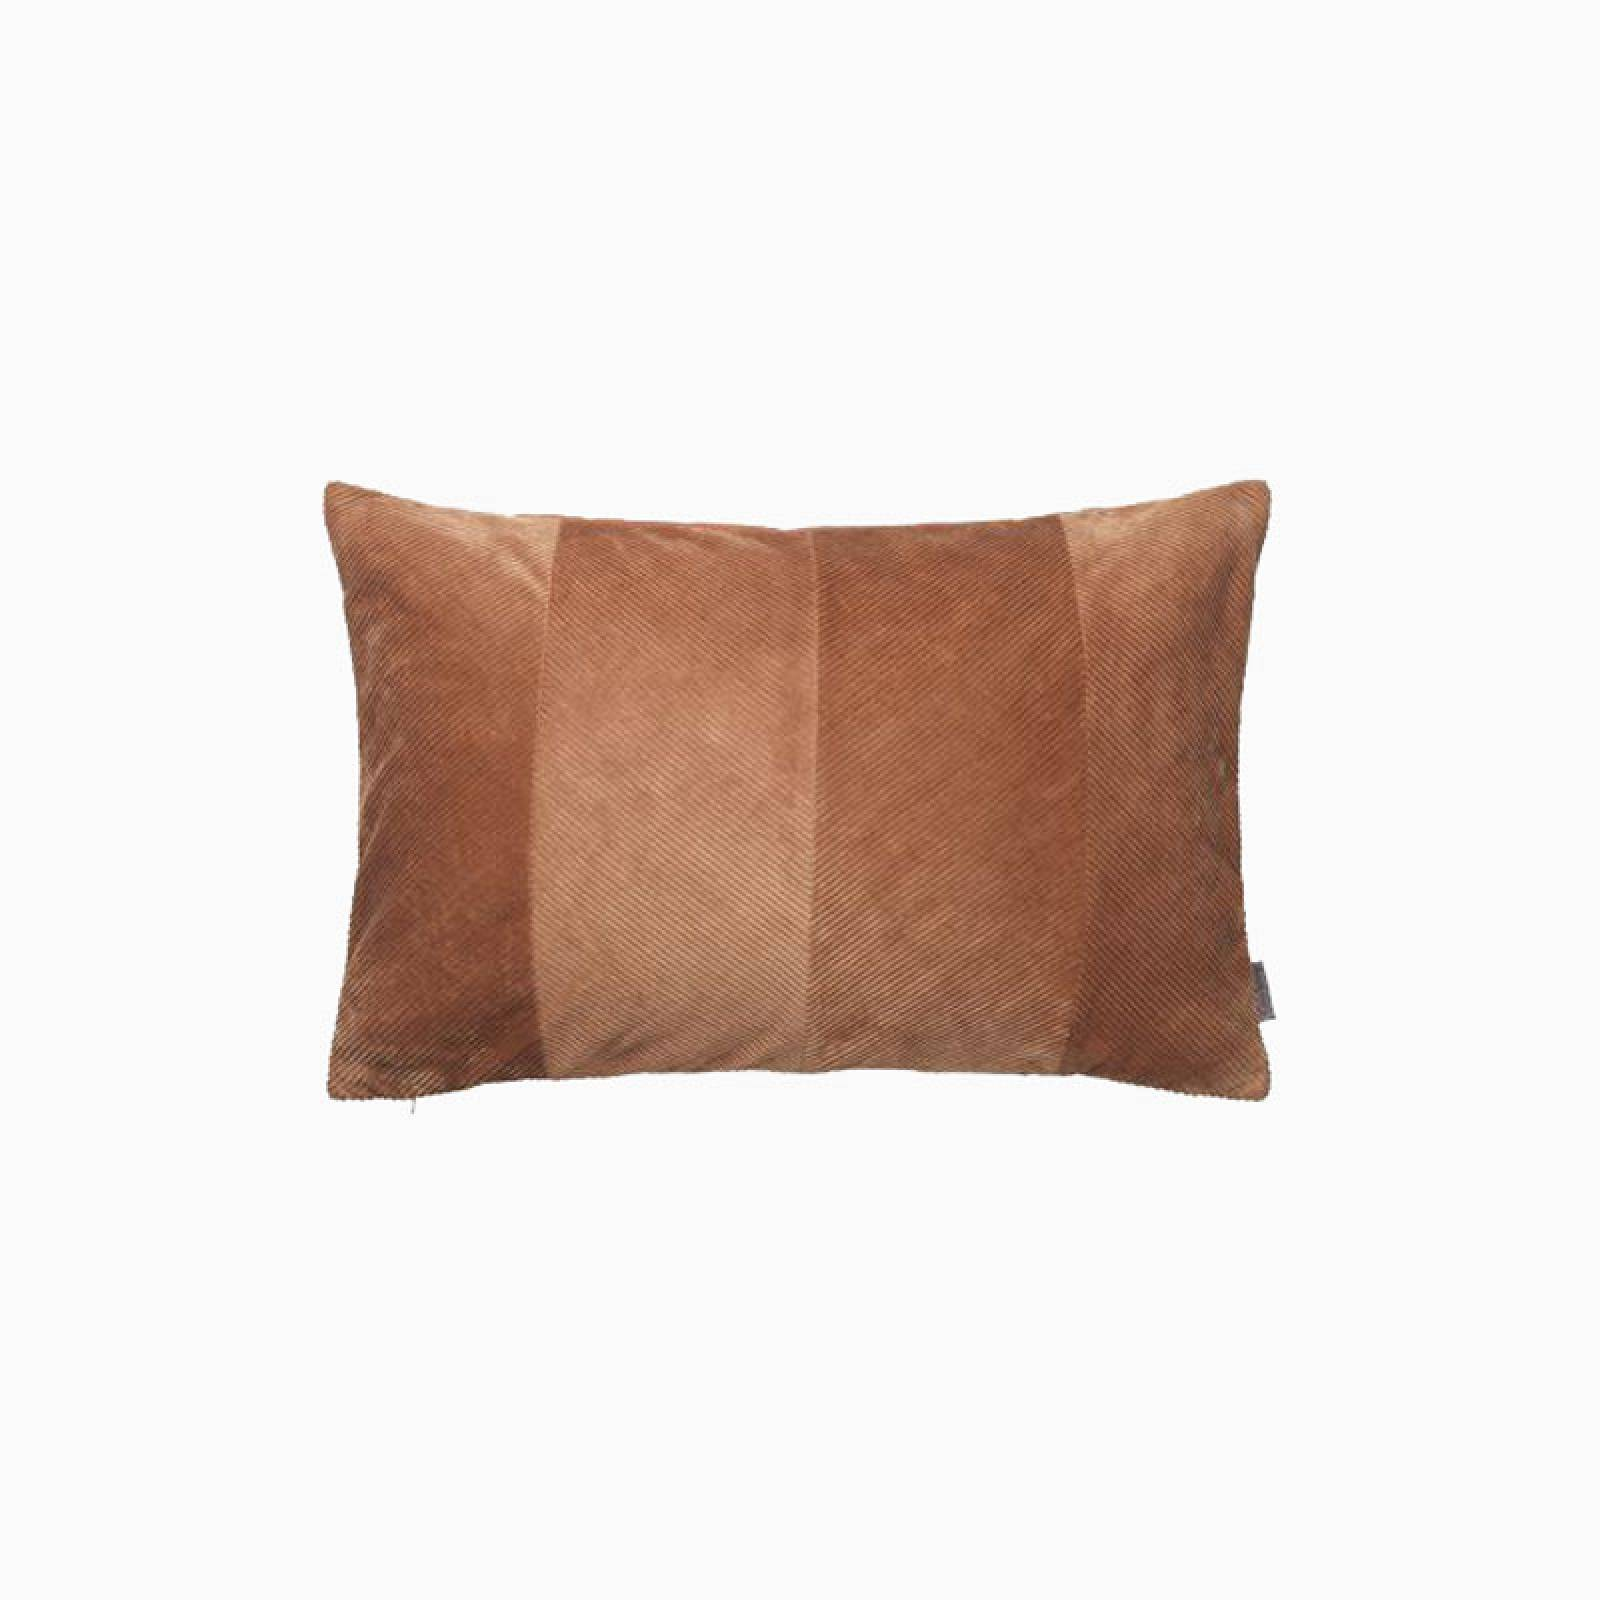 Rectangular Corduroy Cushion In Terracotta With Gold Zip